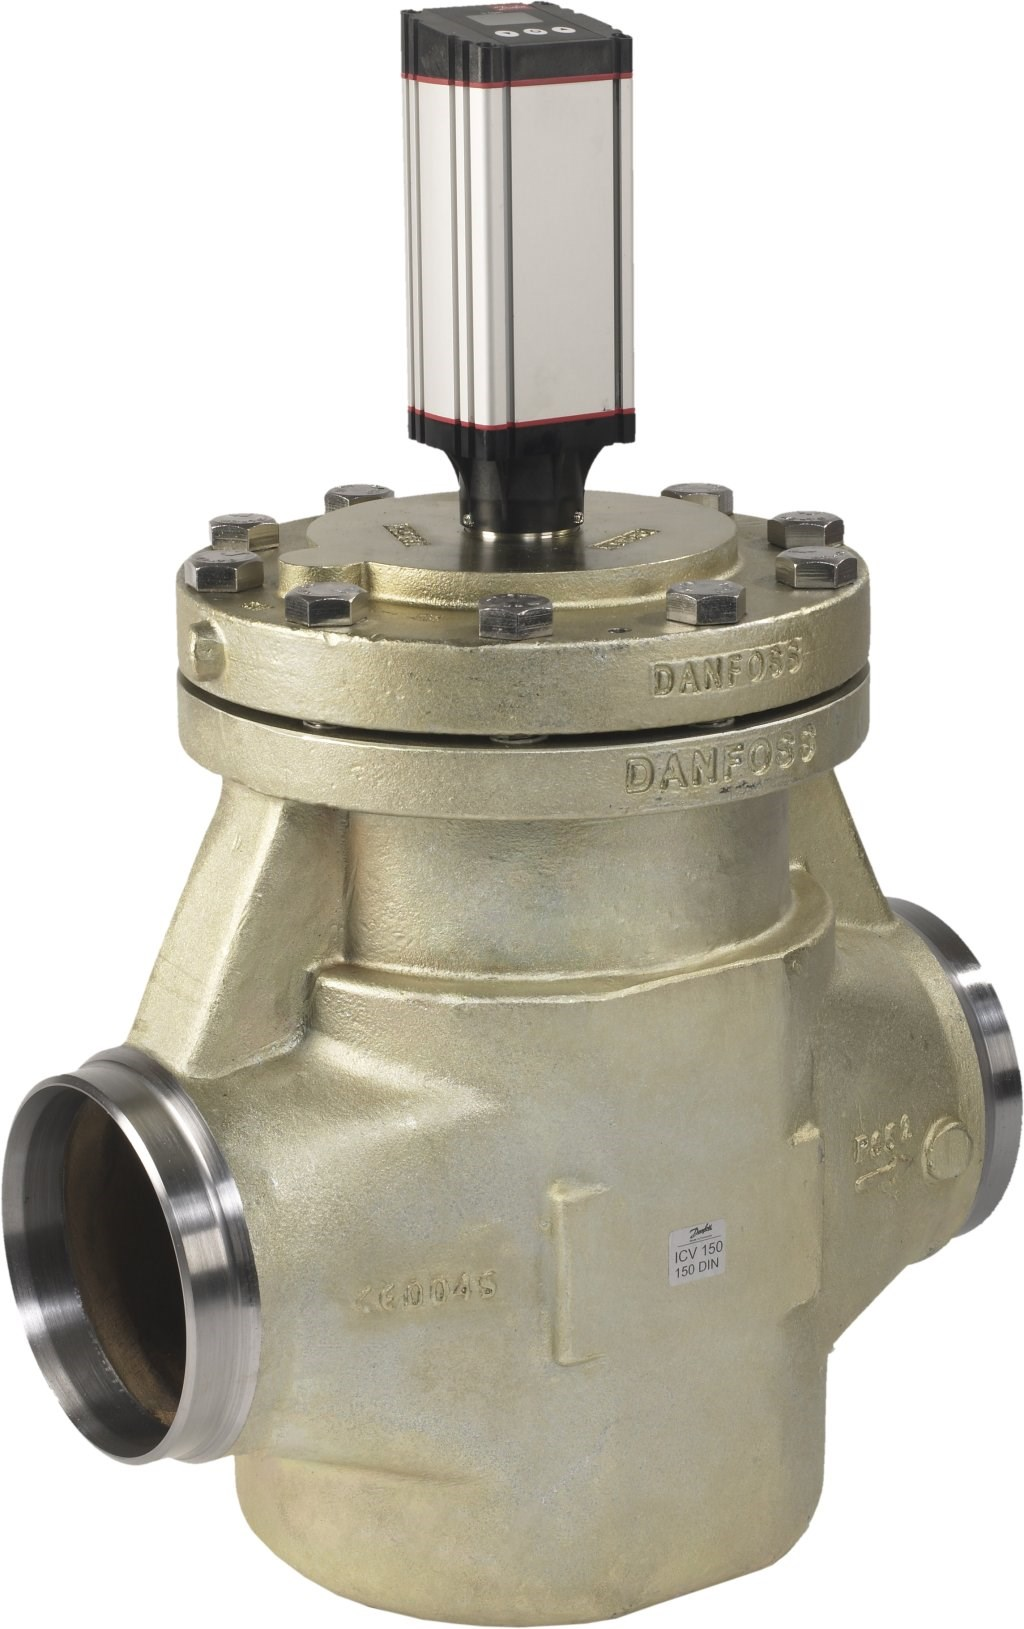 Icm 100 150 Motor Operated Valve Complete Valves Visuals